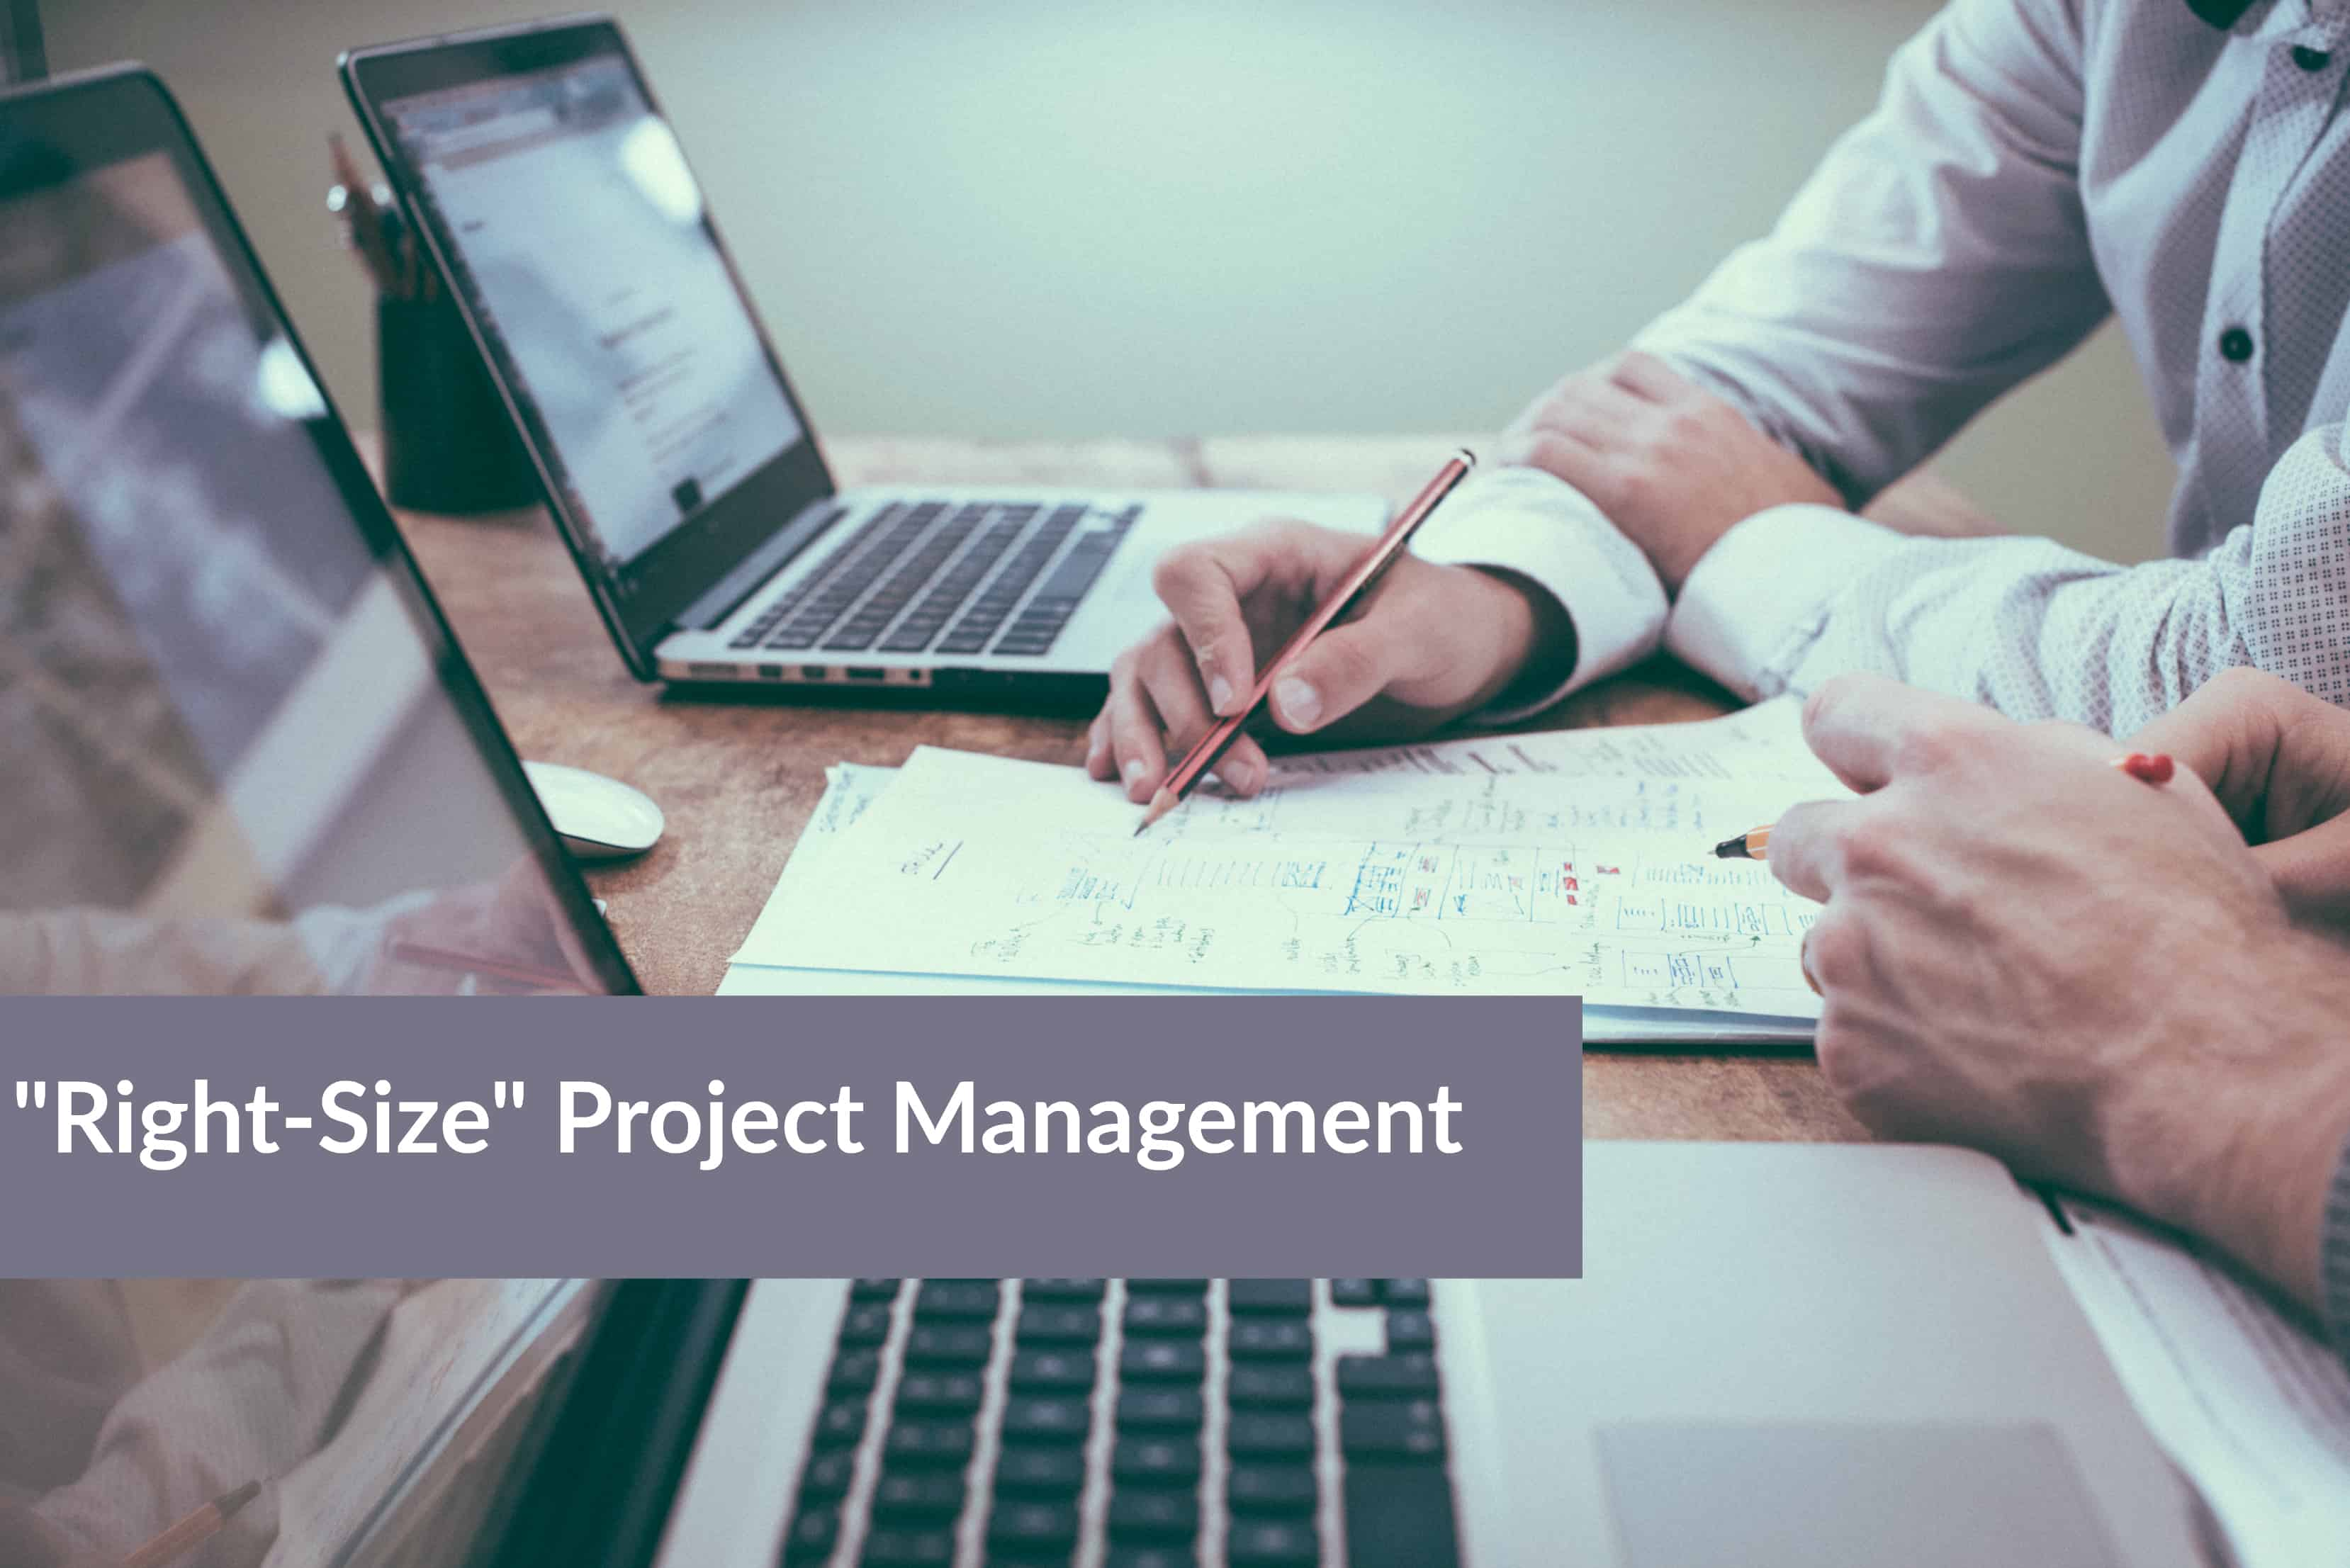 Right-Size Project Management